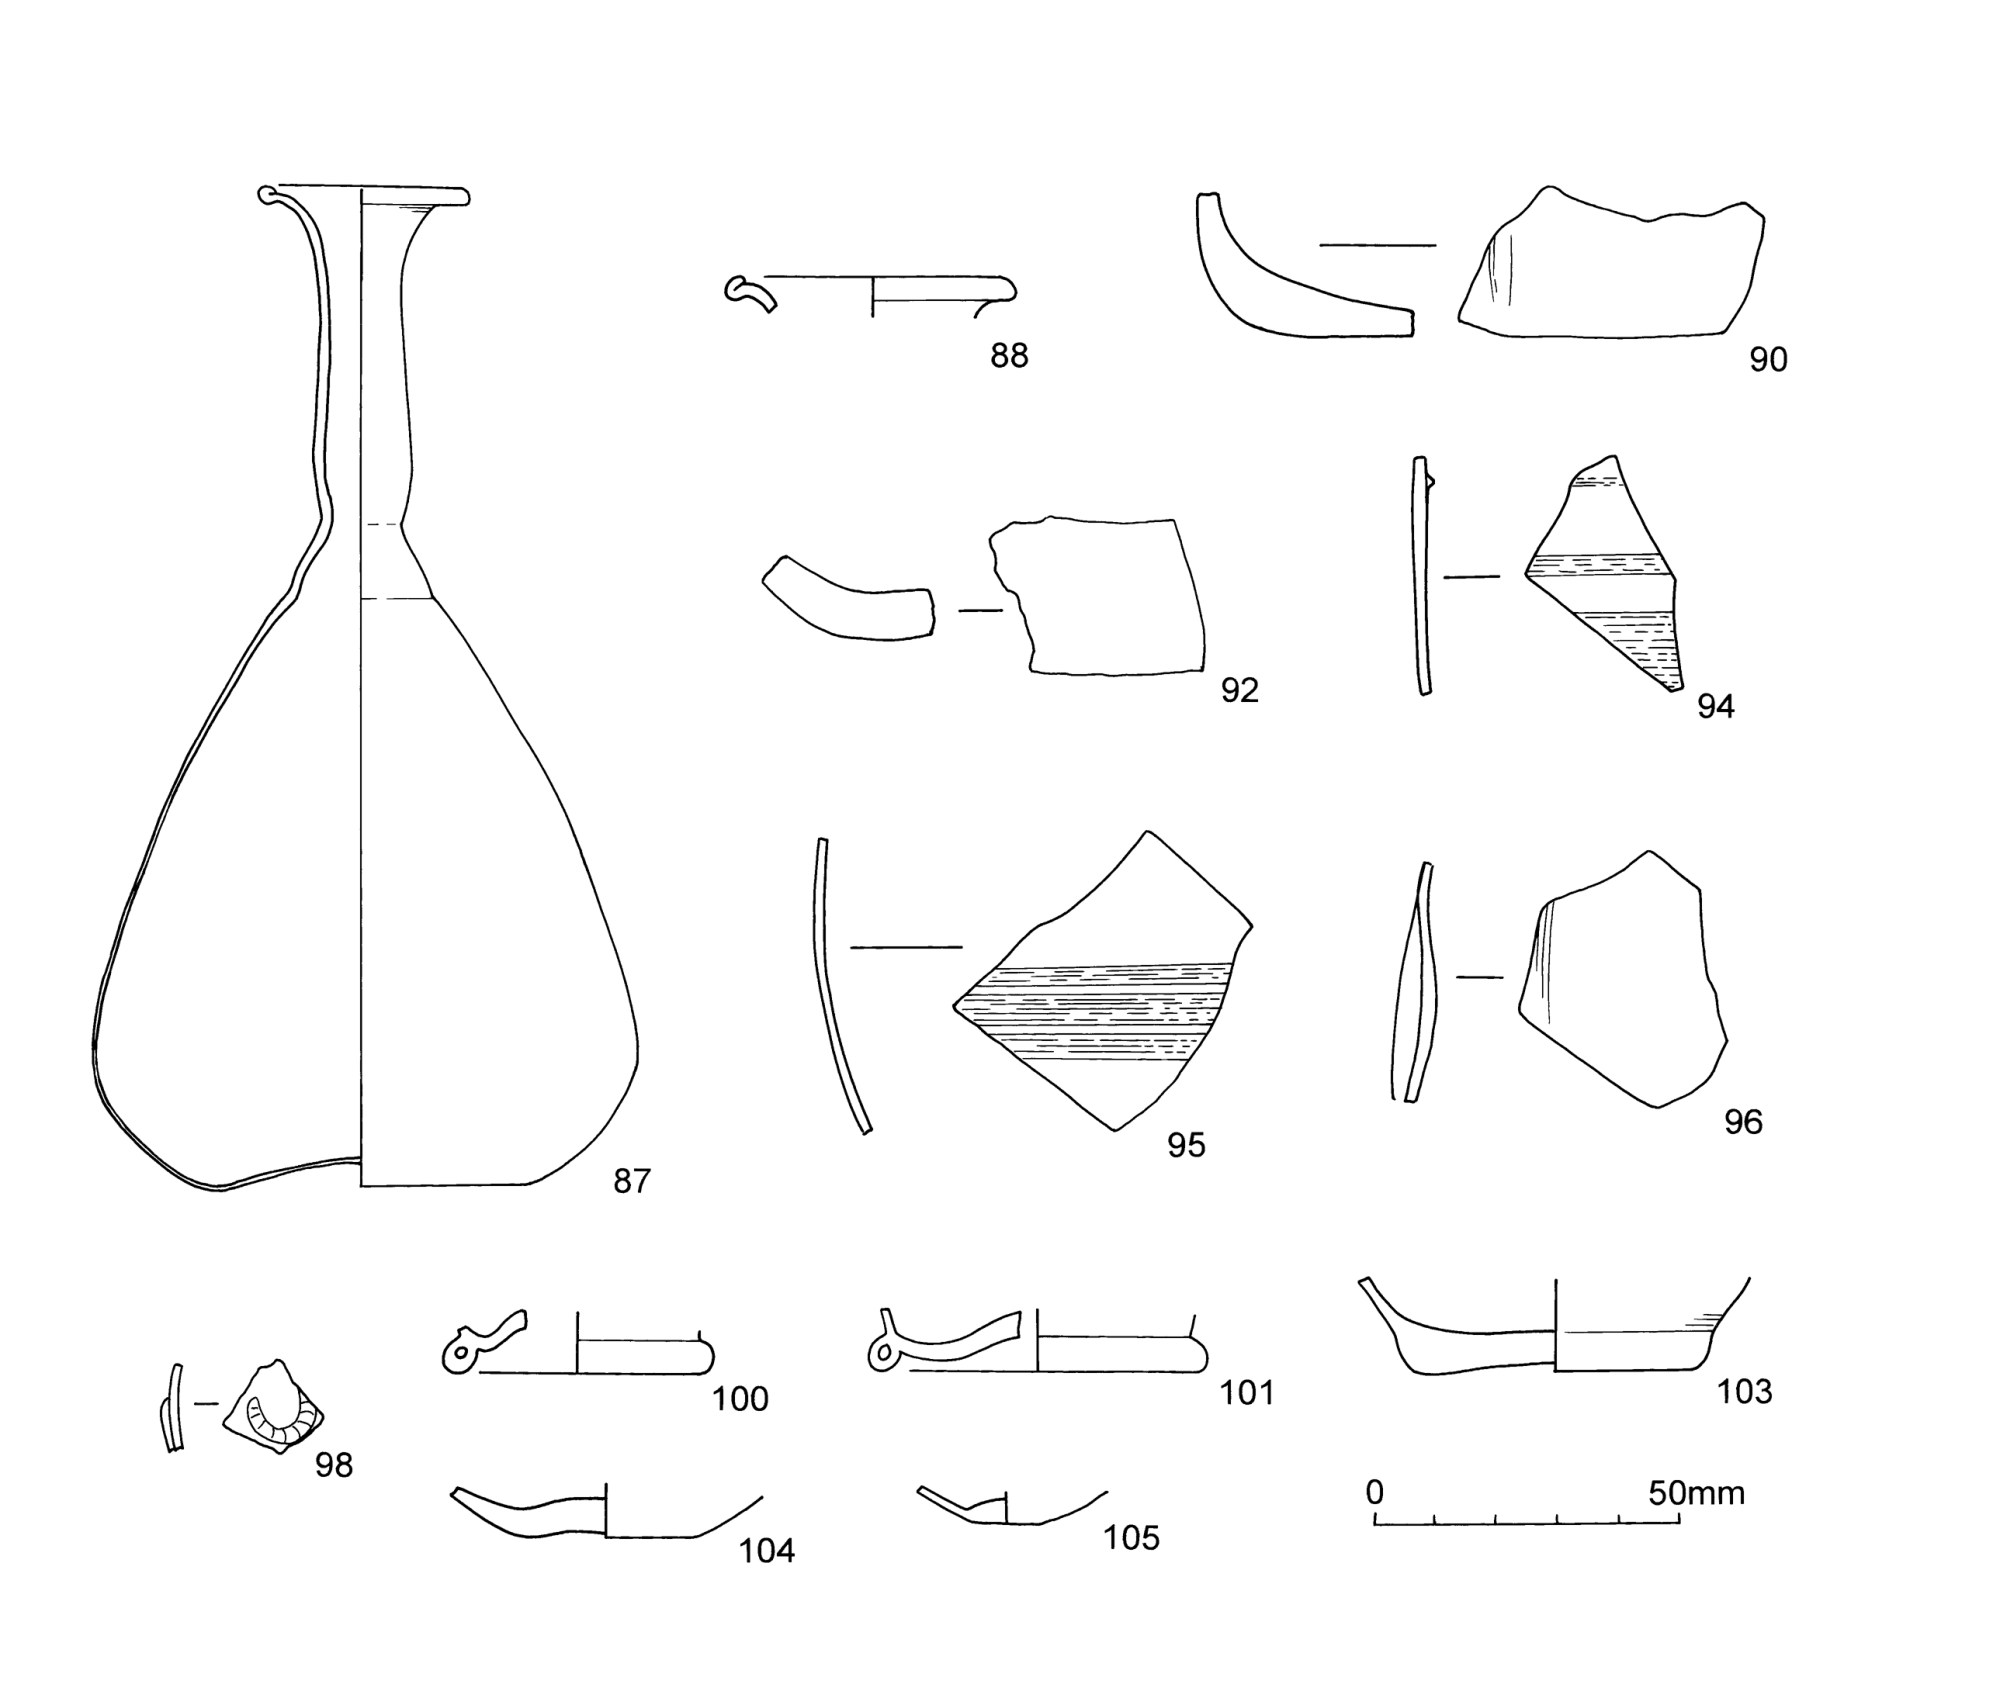 hight resolution of figure 424 roman glass 87 105